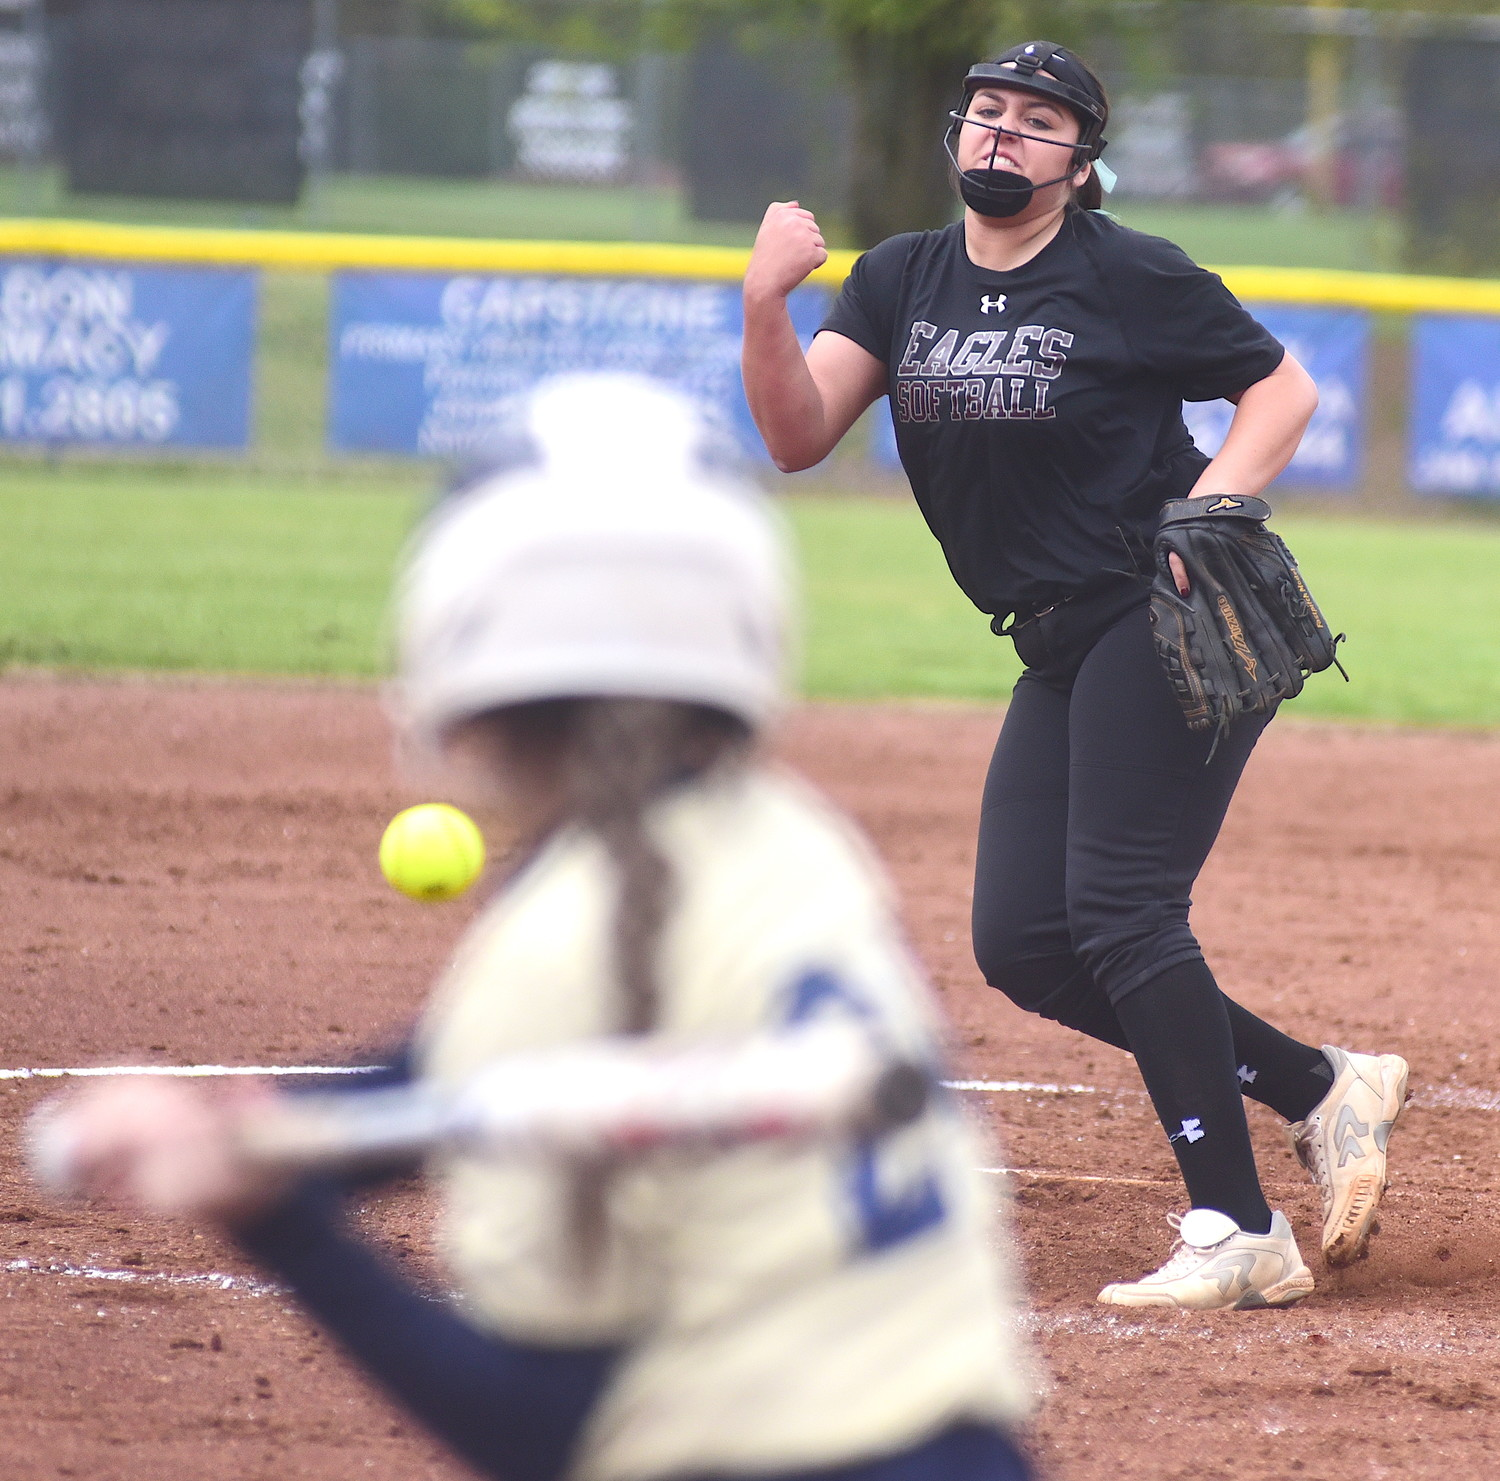 Sumiton Christian's Mak Miller throws a pitch to a Dora batter during the Eagles' 2-0 victory over the Bulldogs in the Bevill State Invitational on Friday. Sumiton Christian is off to a 1-0-1 start after defeating Dora and tying Hueytown.